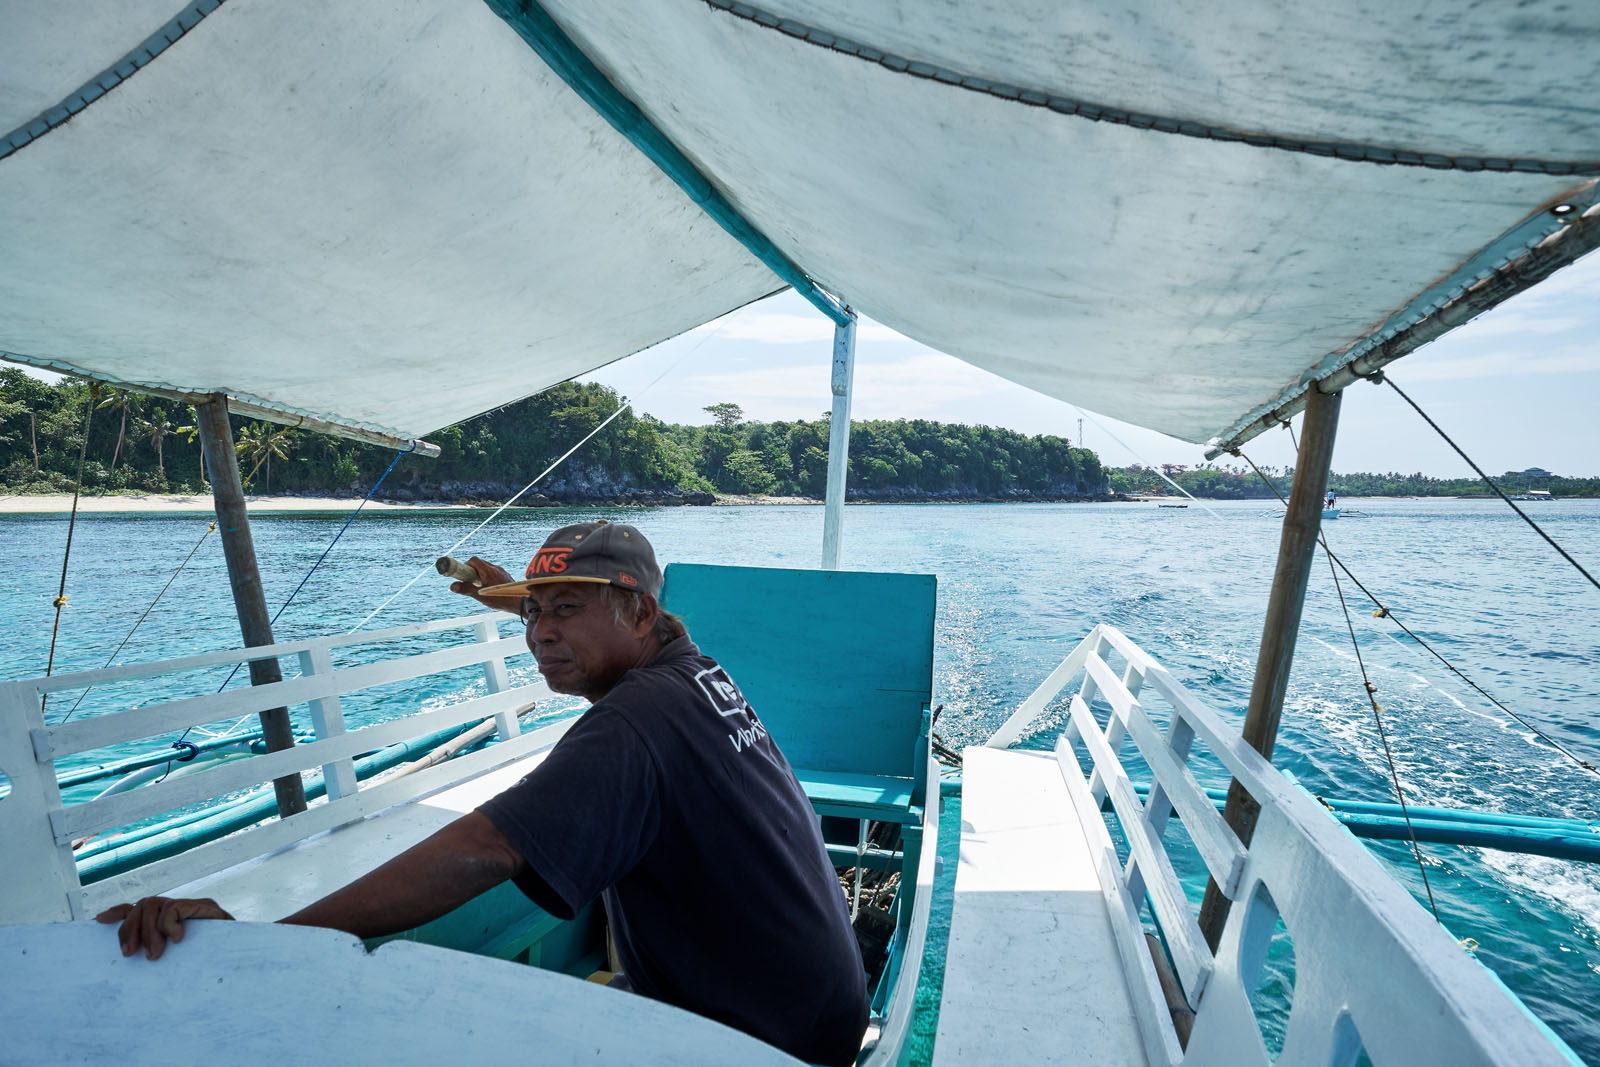 the captain of a tourist boat keeps a watchful eye